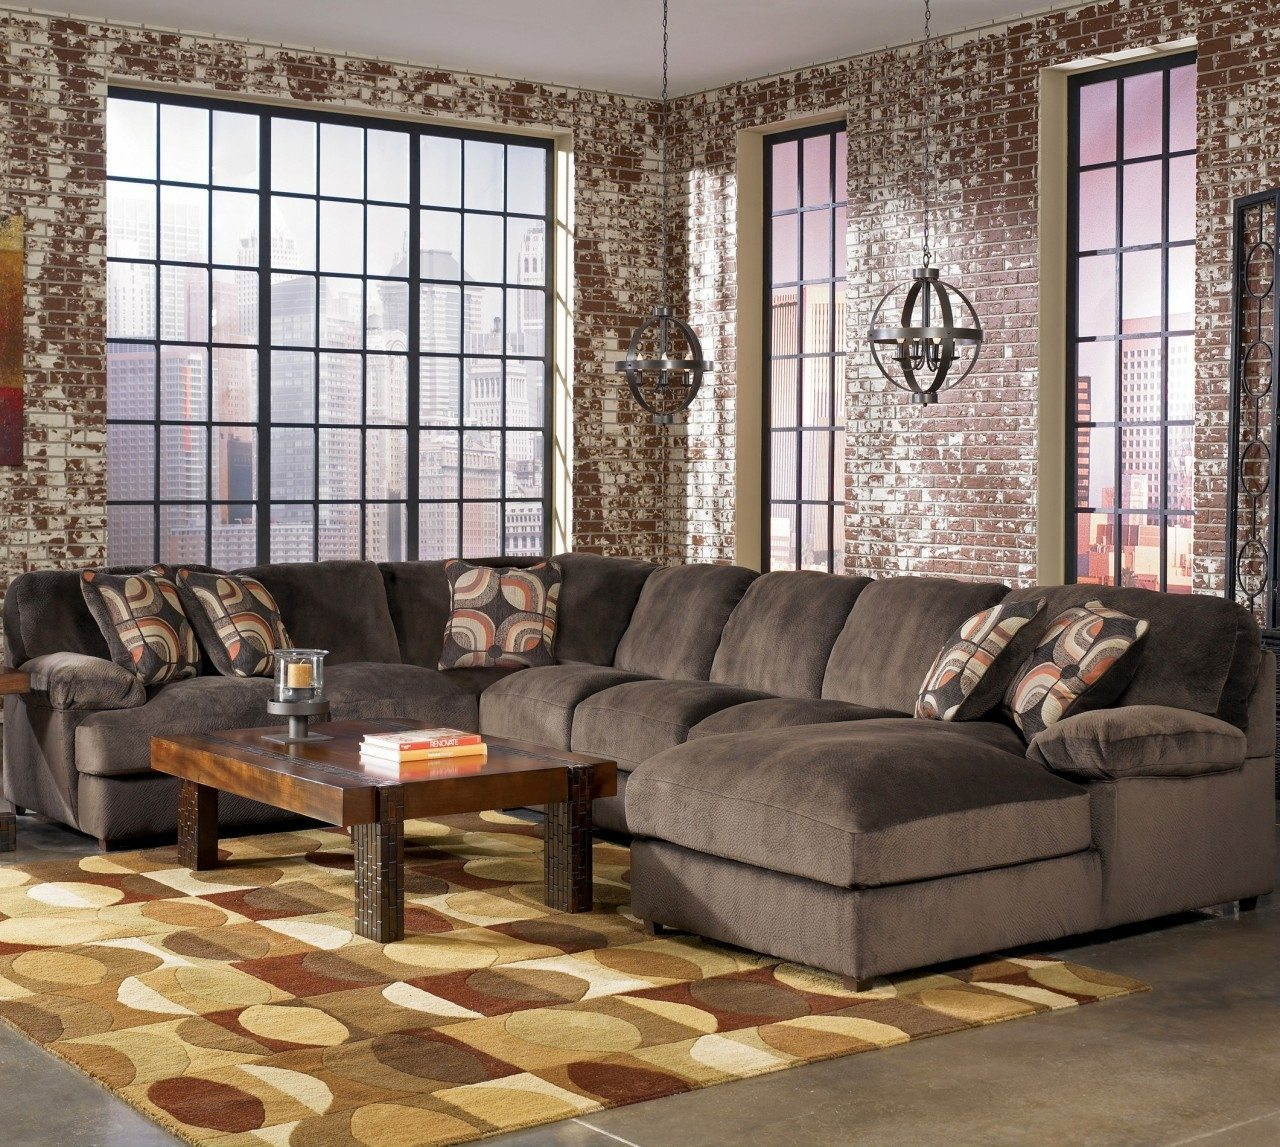 Large Sectional Sofas | Ashley Furniture Sectional | Modular Sofa